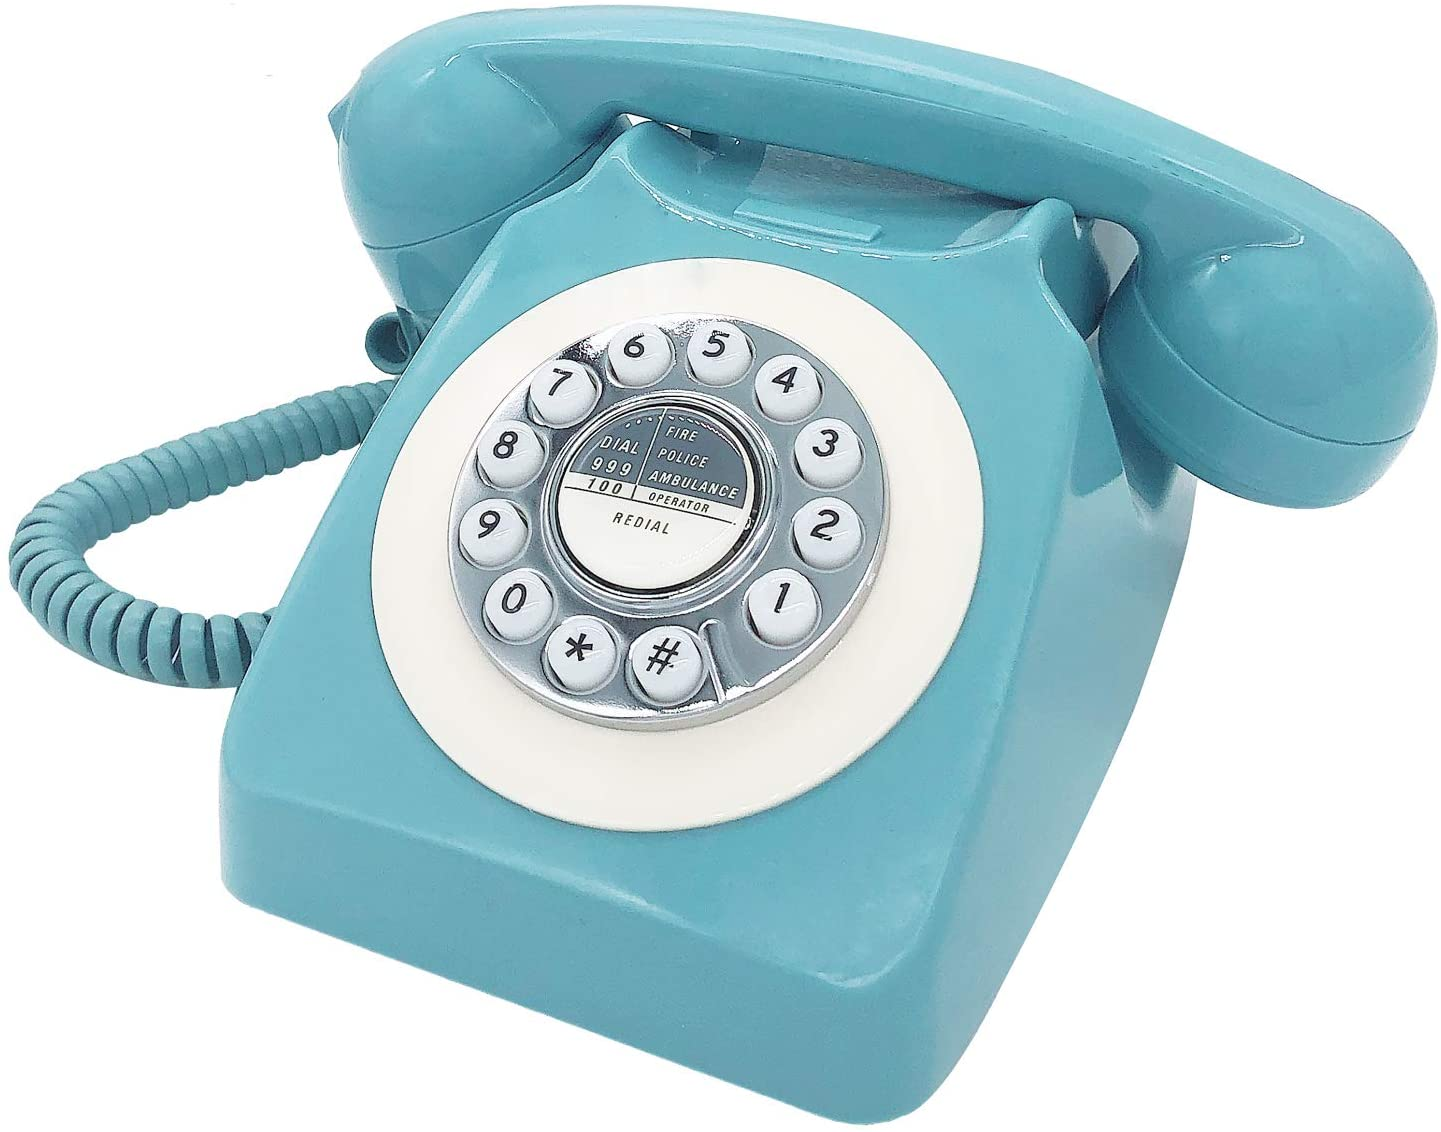 Corded Retro Phone, TelPal Vintage Old Phones, Classic 1930's Antique Landline Phones for Home & Office Decor, Novelty Hotel Telephone with Redial